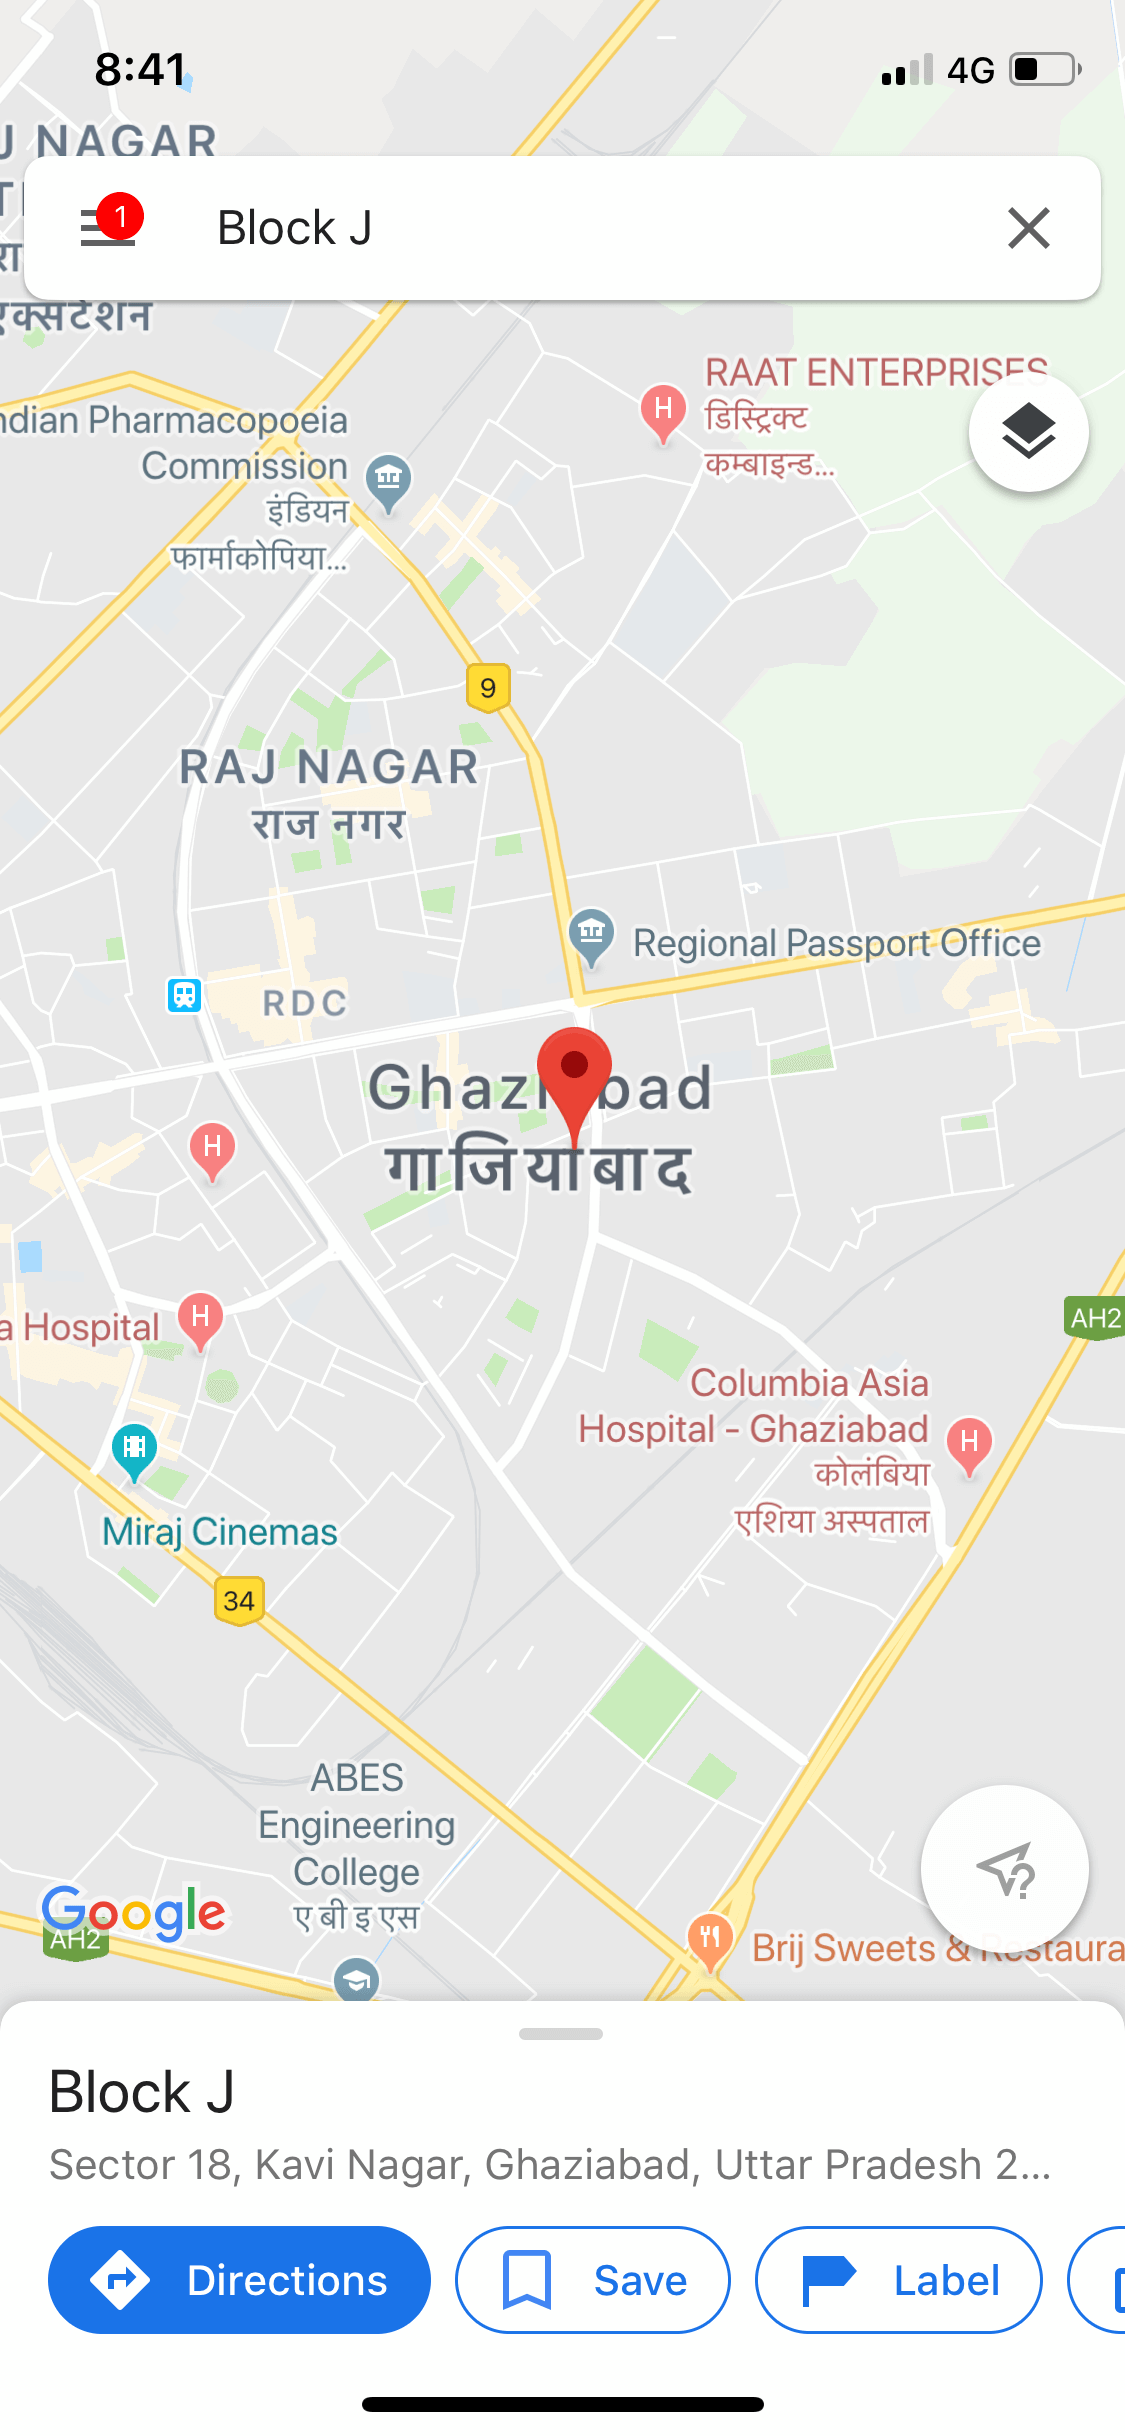 Long press on the Google maps in iPhone to get the name of any location